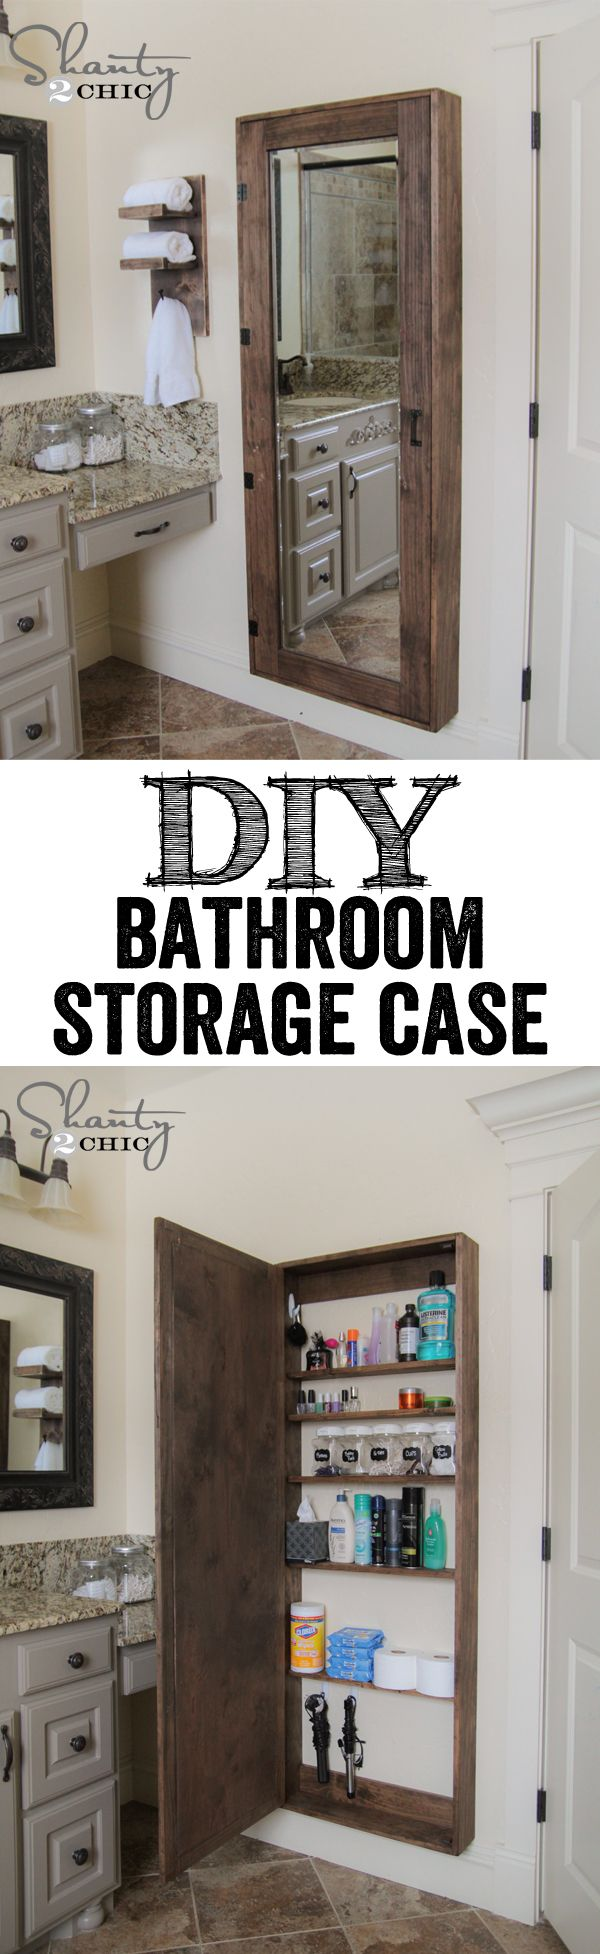 258 best diy bathroom decor images on pinterest | home, room and